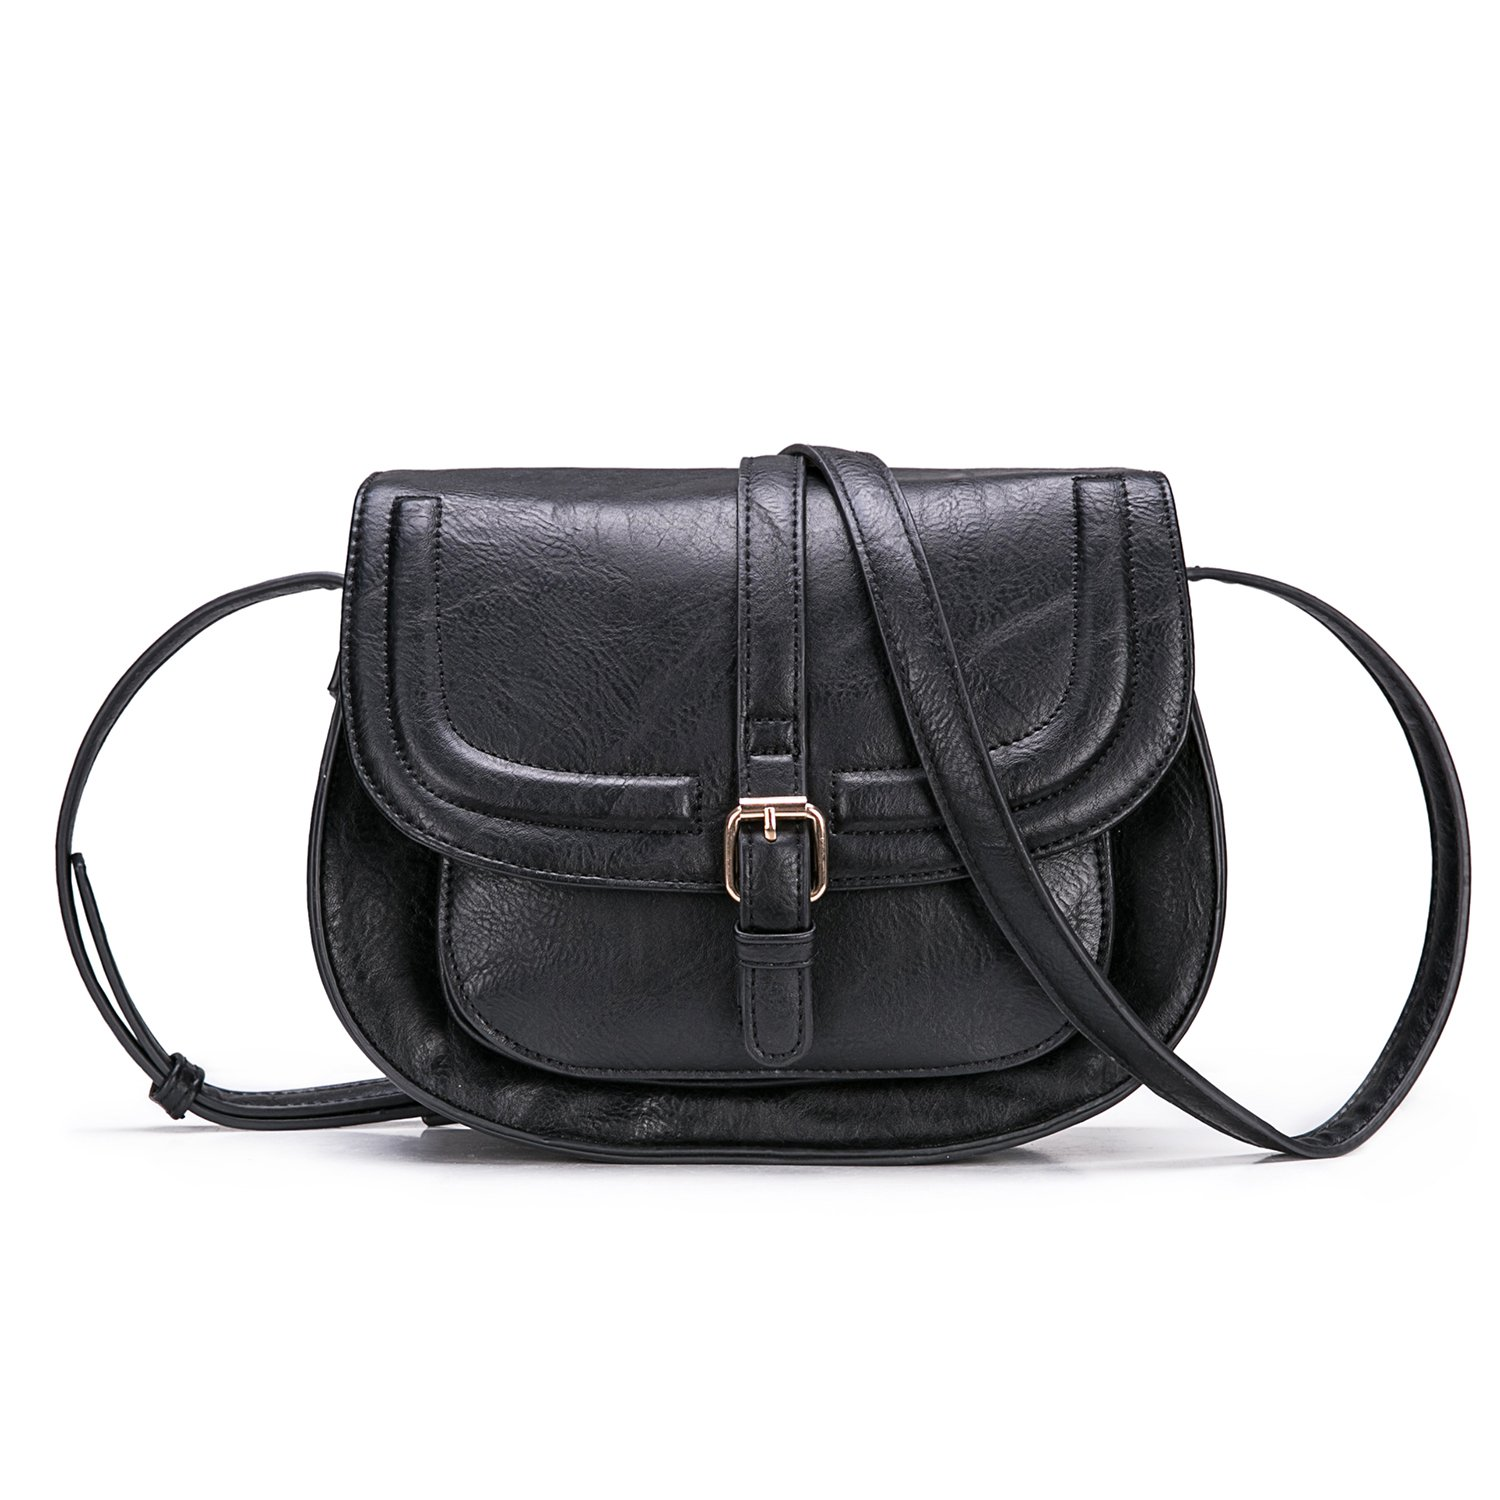 Small Purse Vintage Satchel for Women PU Leather Cover Hasp Crossbody Bag and Saddle Shoulder Bag with Long Adjustable Strap